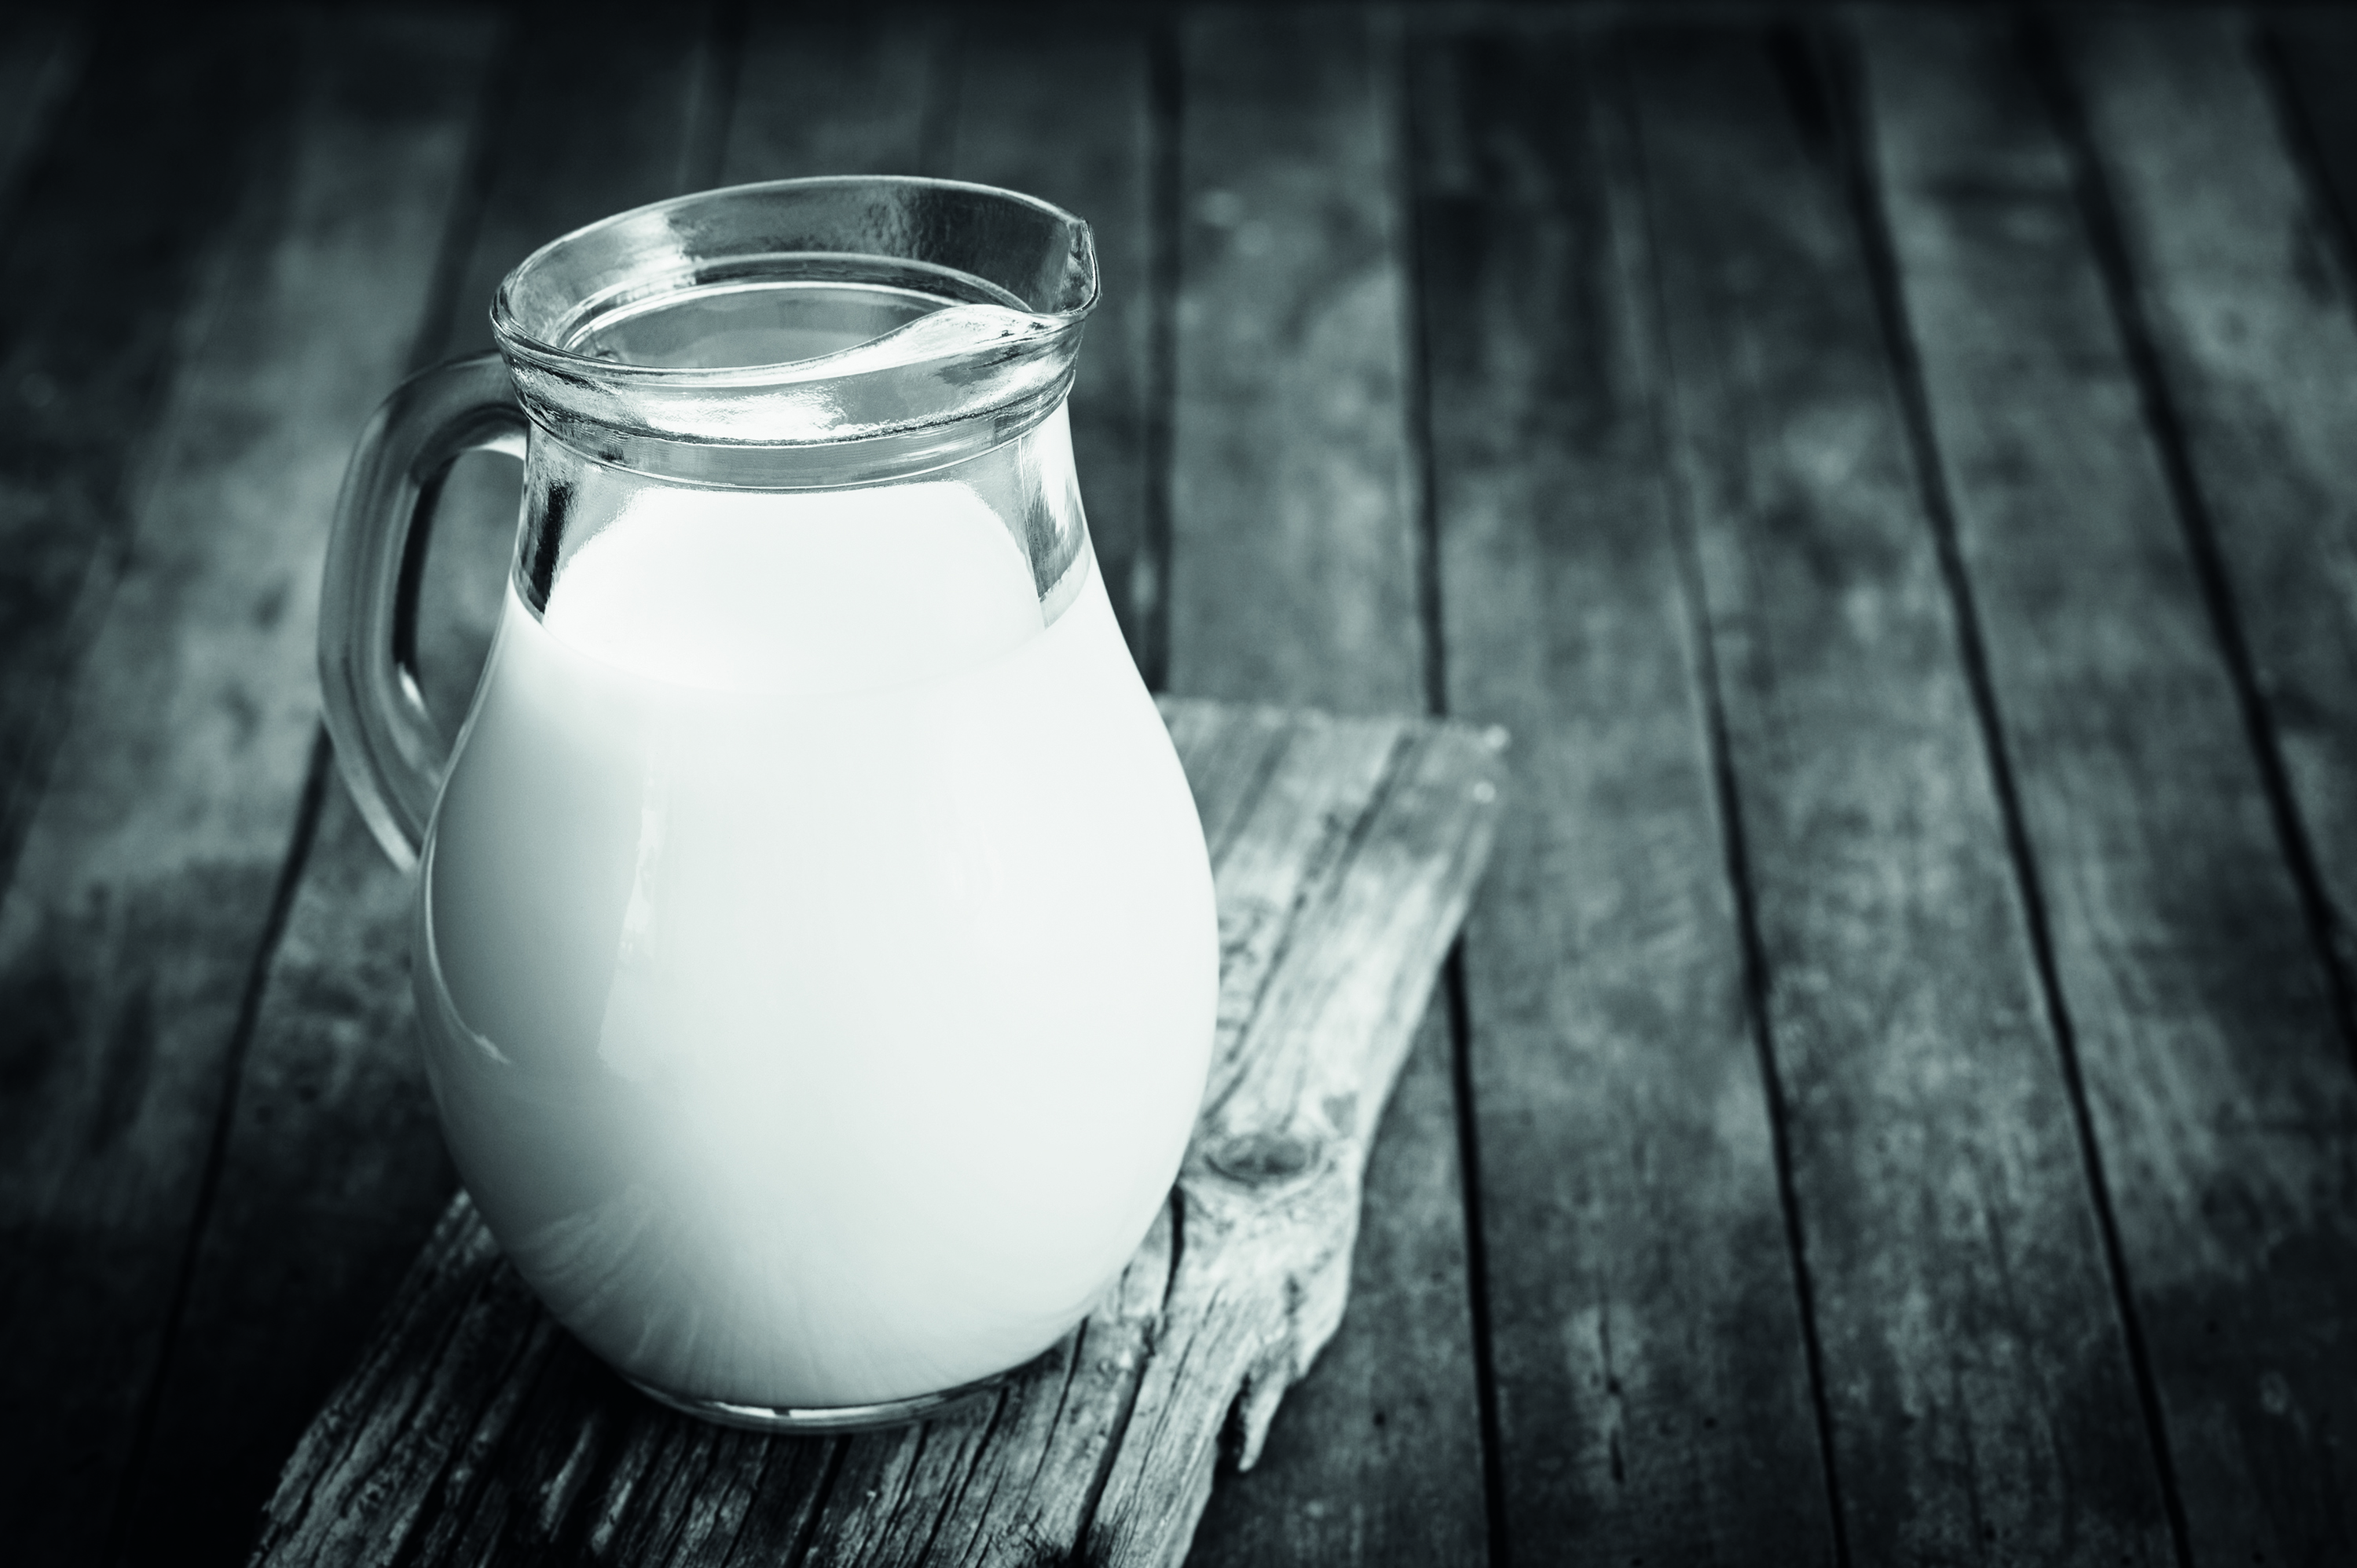 Fresh milk in the jug on the table